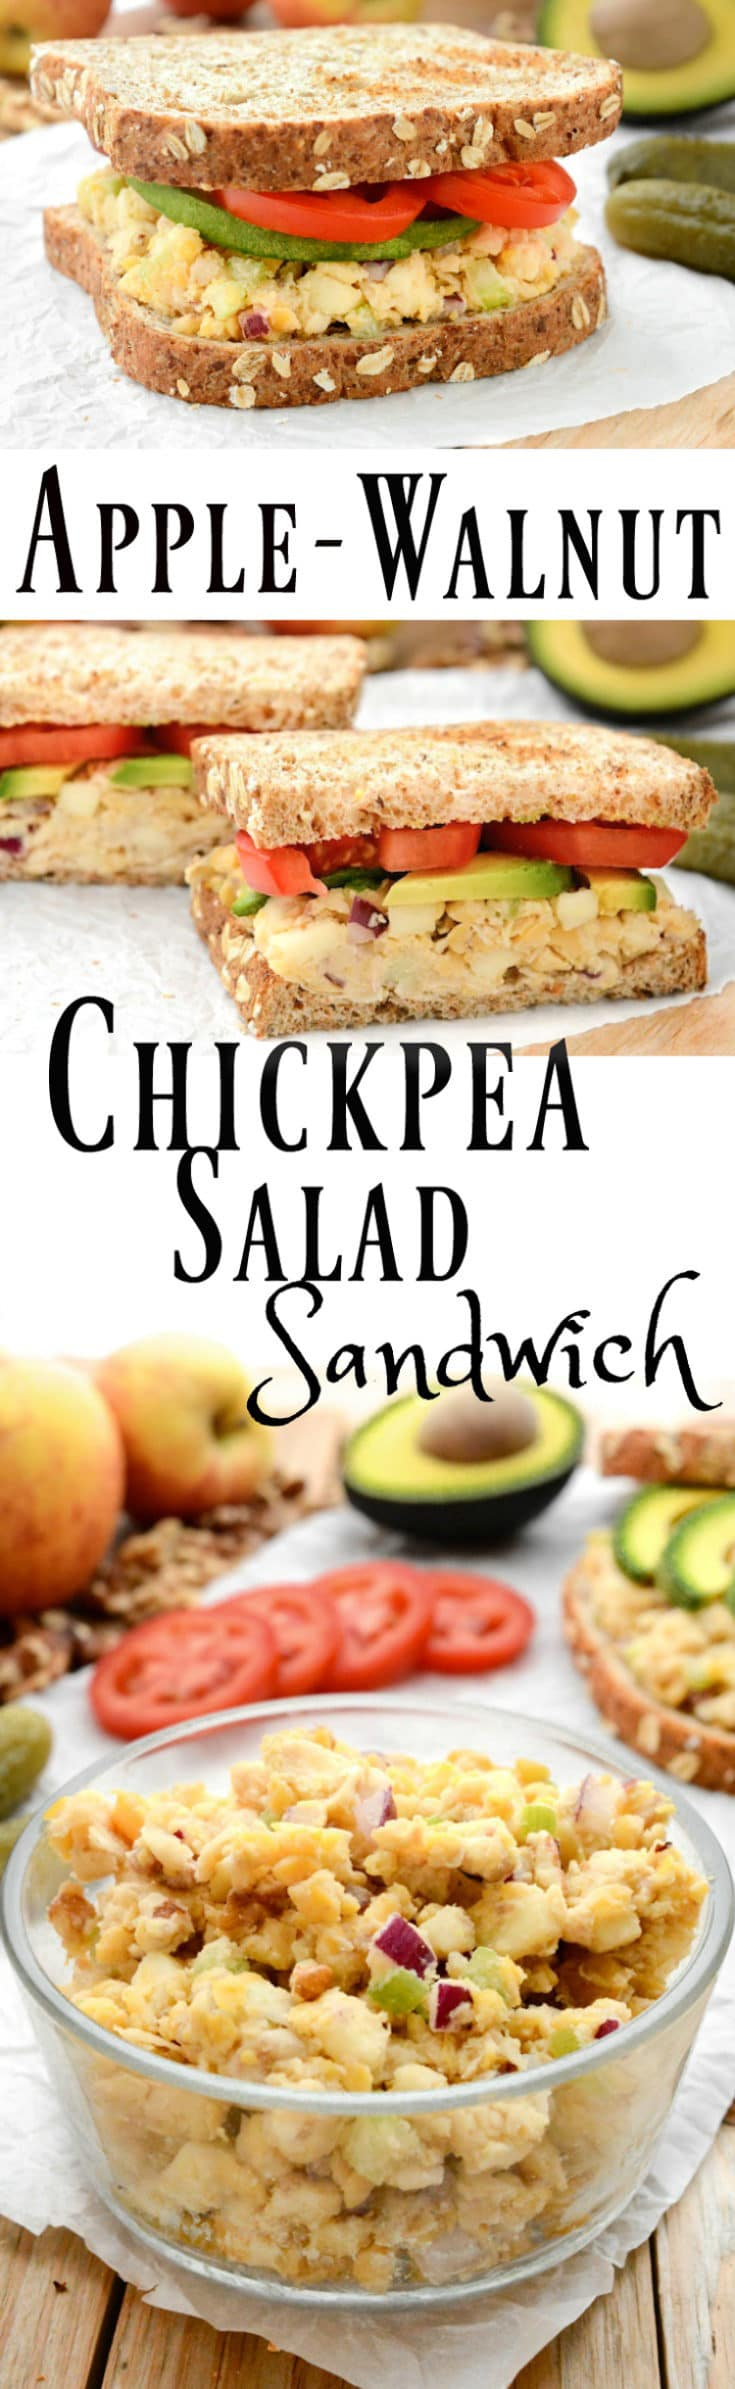 A vegan Apple-Walnut Chickpea Salad Sandwich that tastes like no other!  It's made with an oil-free tahini dressing, gluten-free and ready in under 15 minutes.  Prep the salad ahead of time for a quick, grab-and-go, healthy lunch. #chickpeas #summer #vegansandwiches #veganrecipes #chickpeasalad